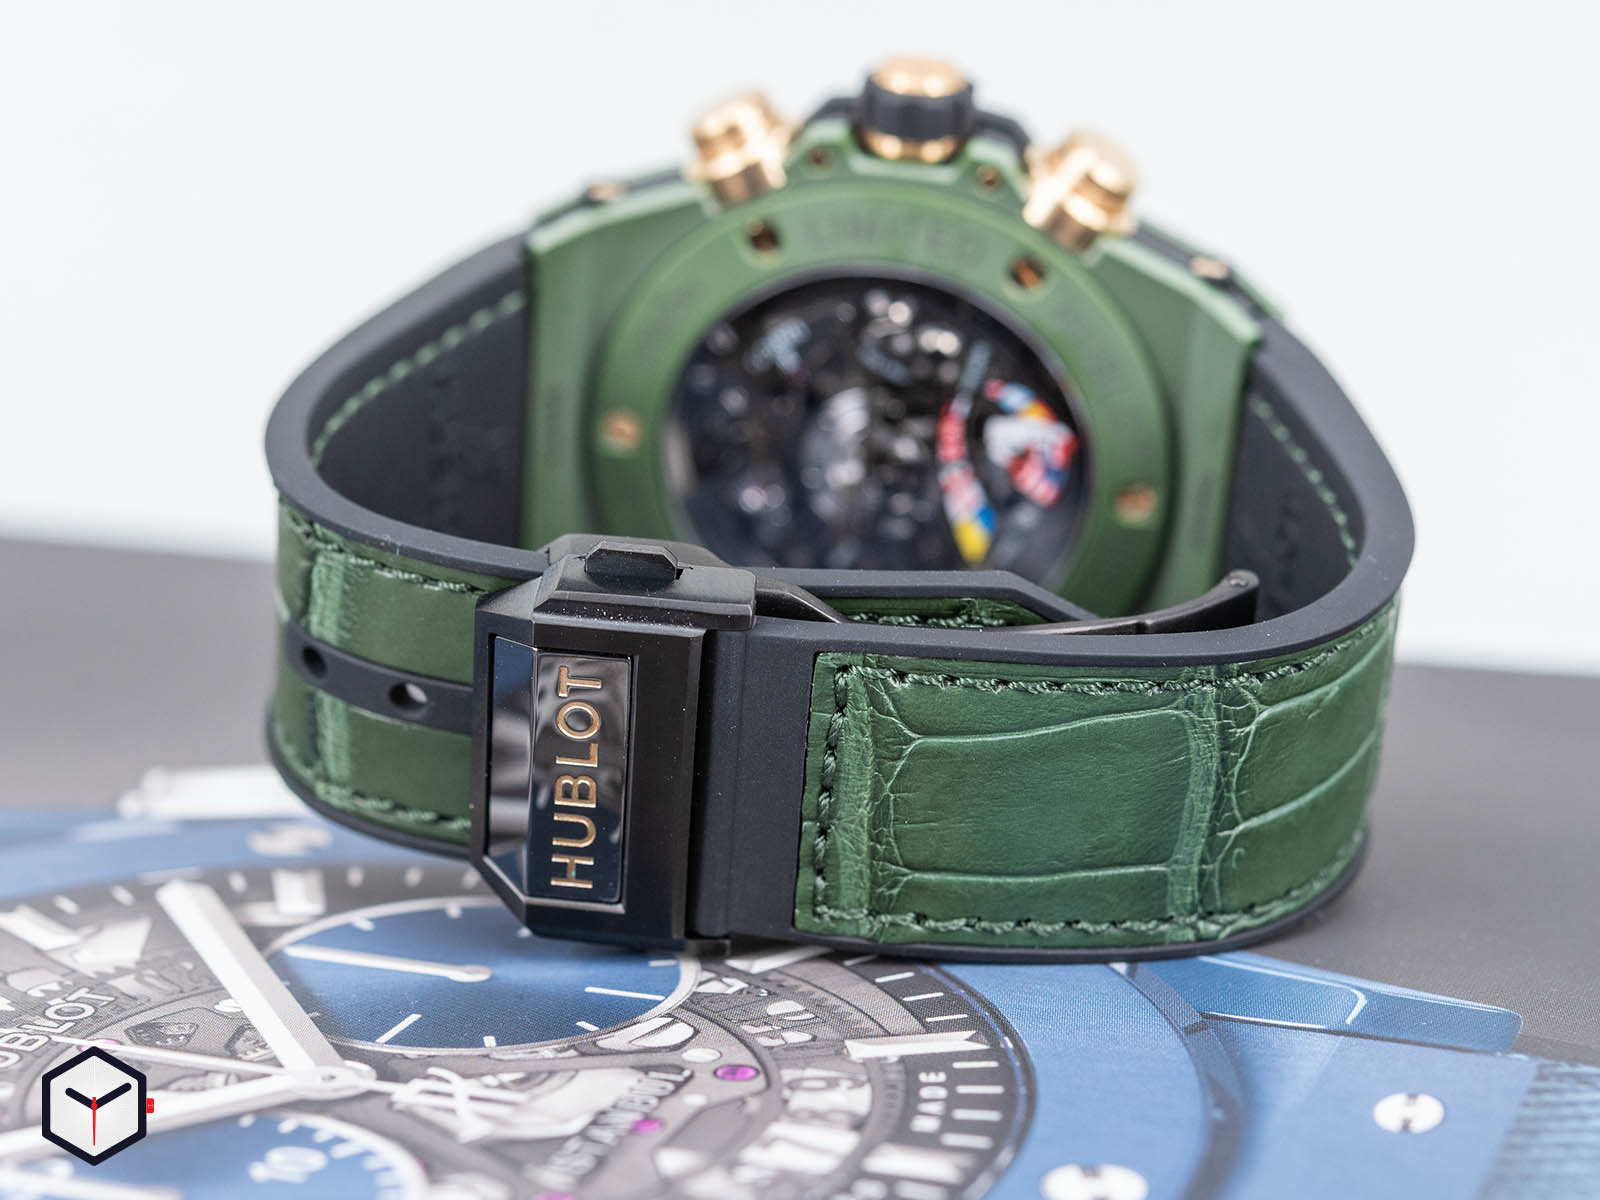 411-gx-1189-lr-wbc19-hublot-big-bang-unico-wbc-7.jpg